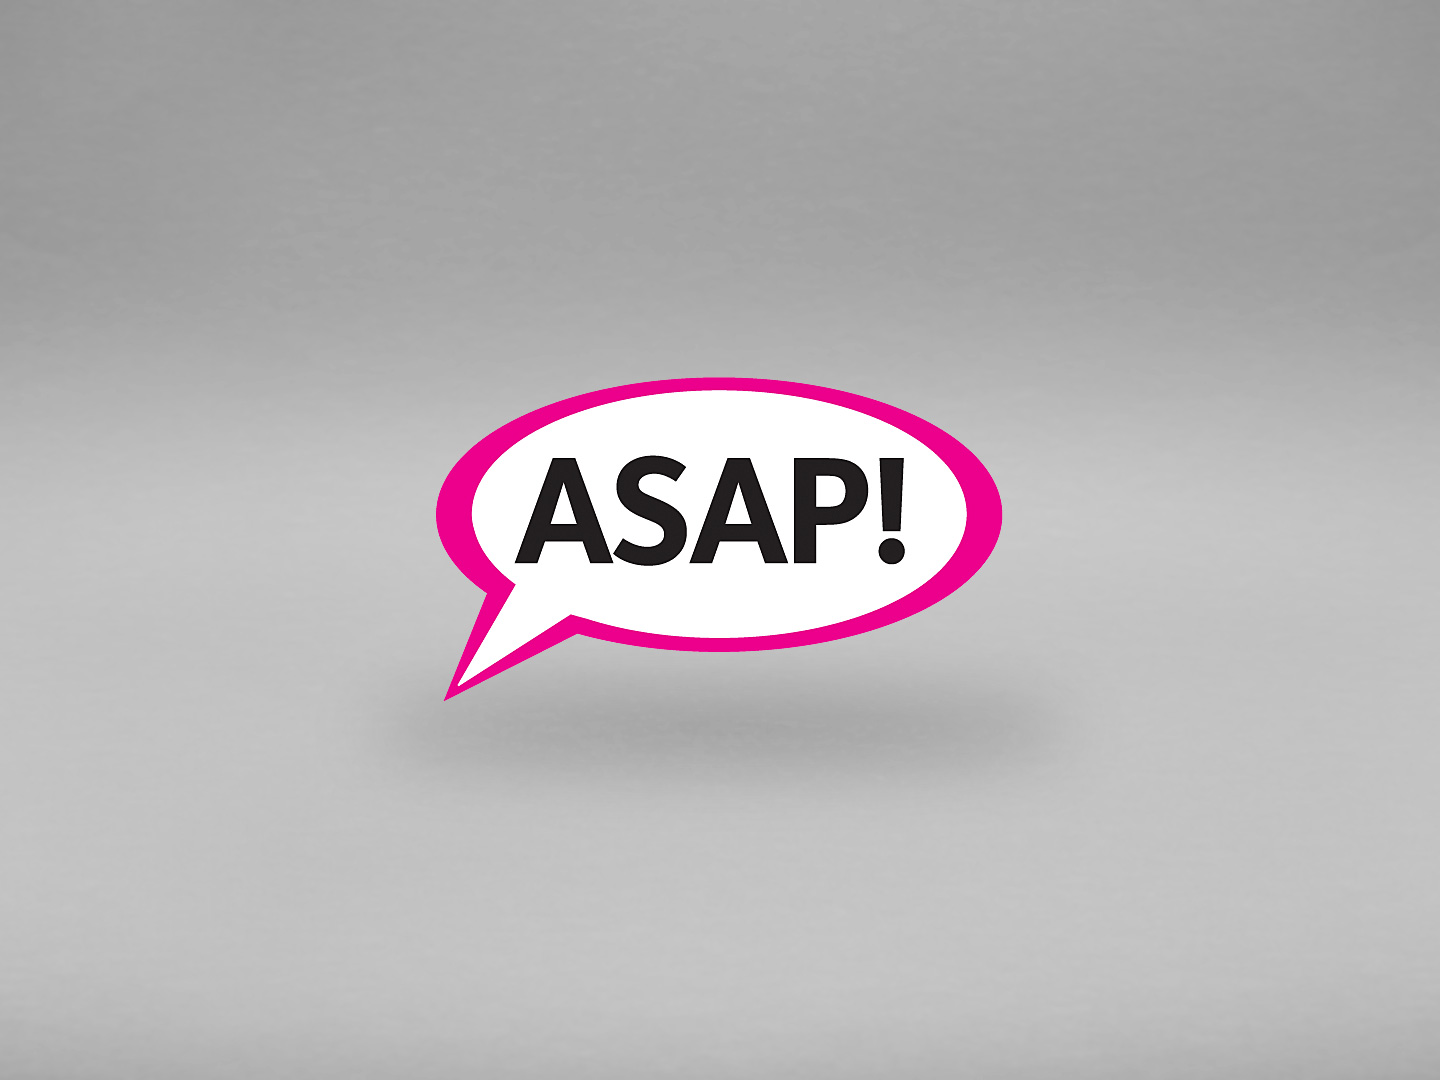 asap digital, printers, printing, grafika, bakewell, derbyshire, branding, logo, stationery, graphic design, agency, peak district, sheffield, chesterfield, manchester, derby